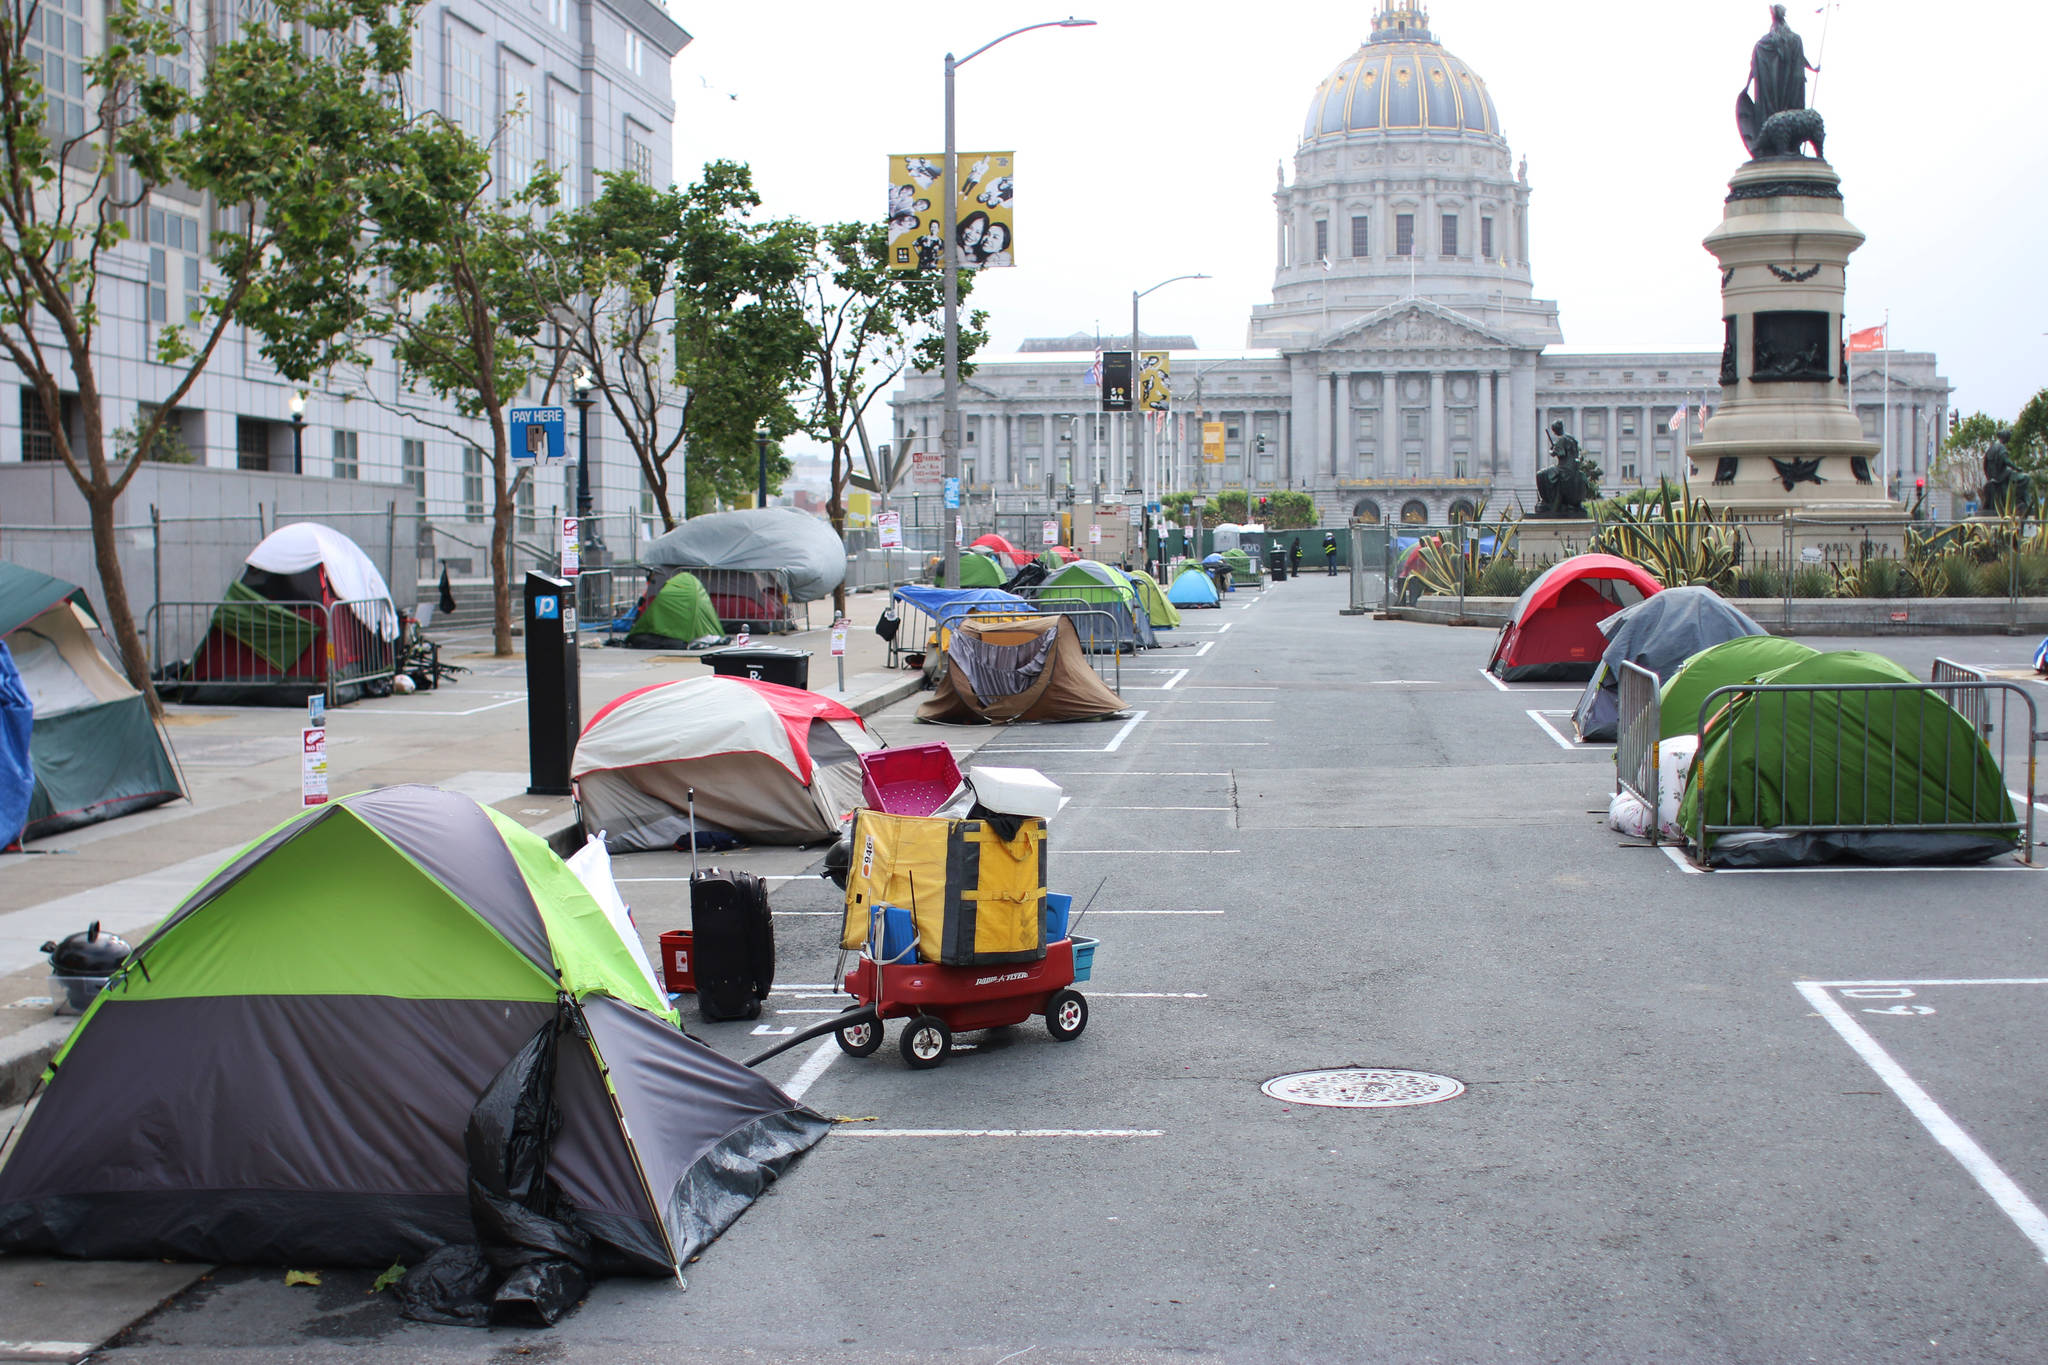 A temporary city-sanctioned camping site with space for around 50 tents opened up at the Civic Center this week. (Corey Browning/Special to the S.F. Examiner)